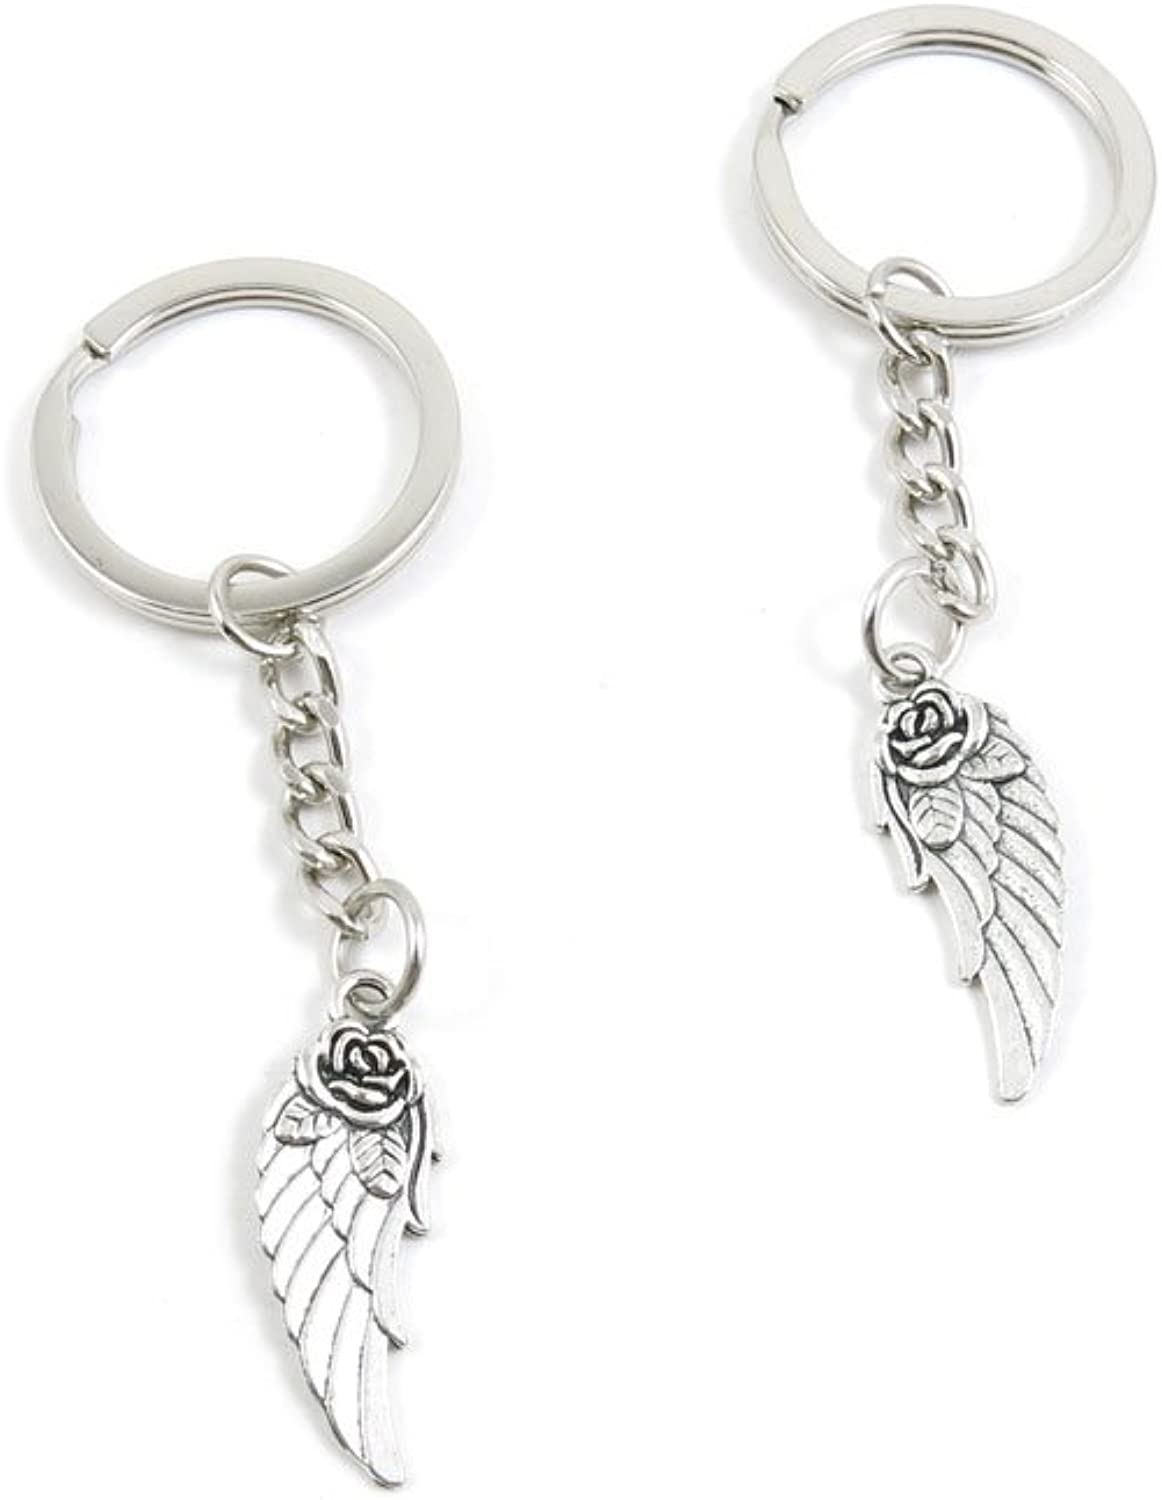 220 Pieces Fashion Jewelry Keyring Keychain Door Car Key Tag Ring Chain Supplier Supply Wholesale Bulk Lots O2JG1 Flower Angel Wing